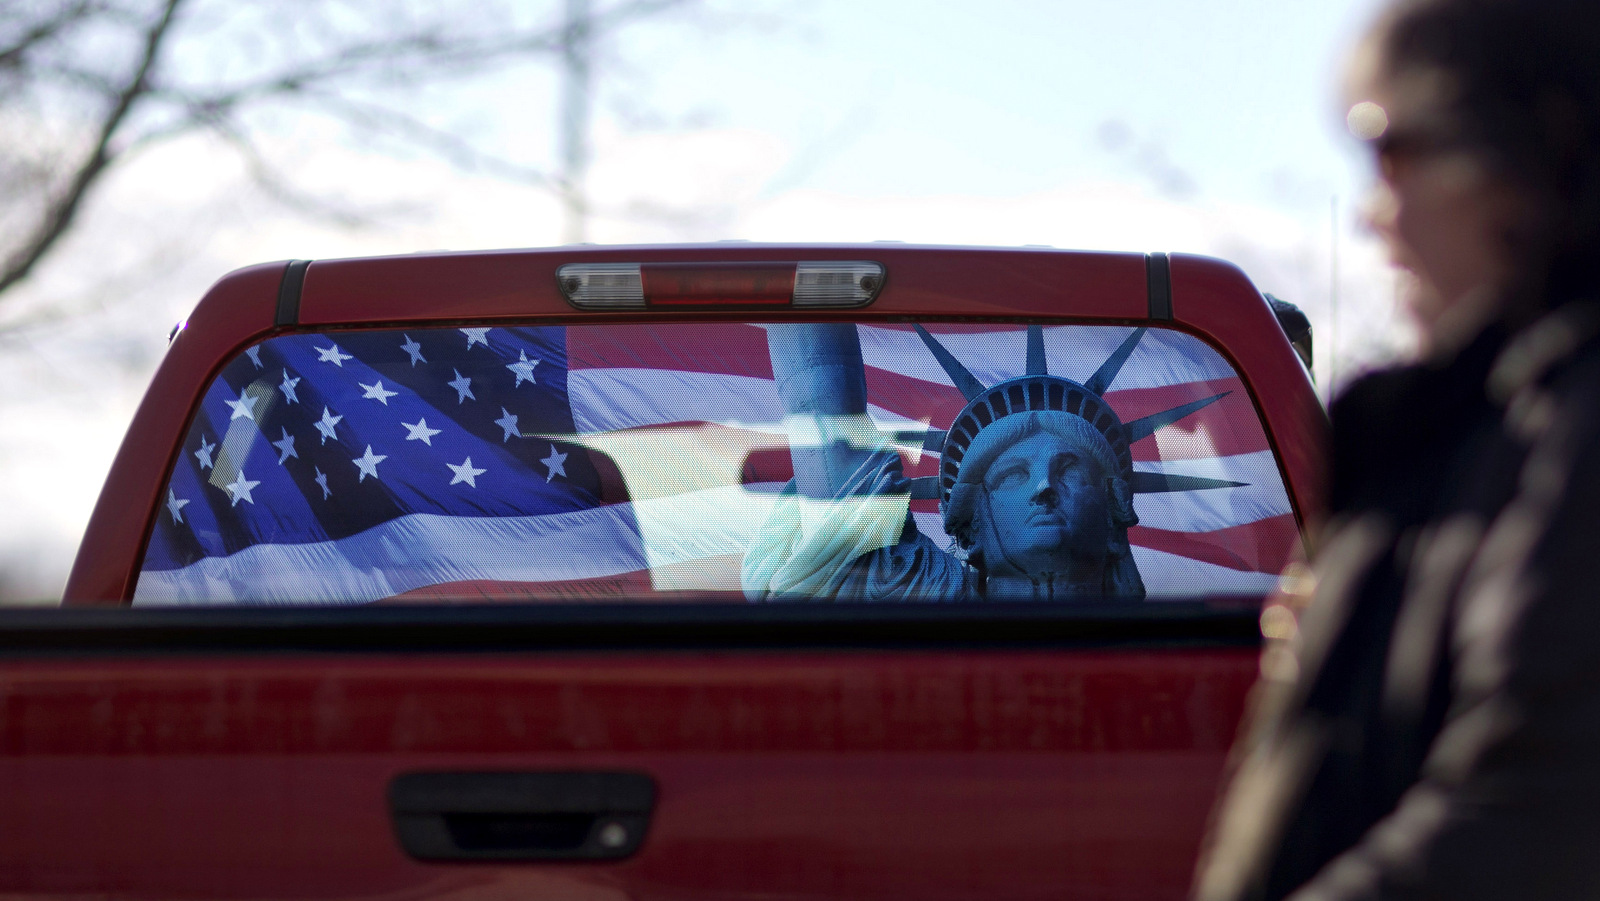 A pickup truck with a rear window decorated in the theme of the American flag and Statue of Liberty, sits in the parking lot in Manchester, N.H. (AP/David Goldman)